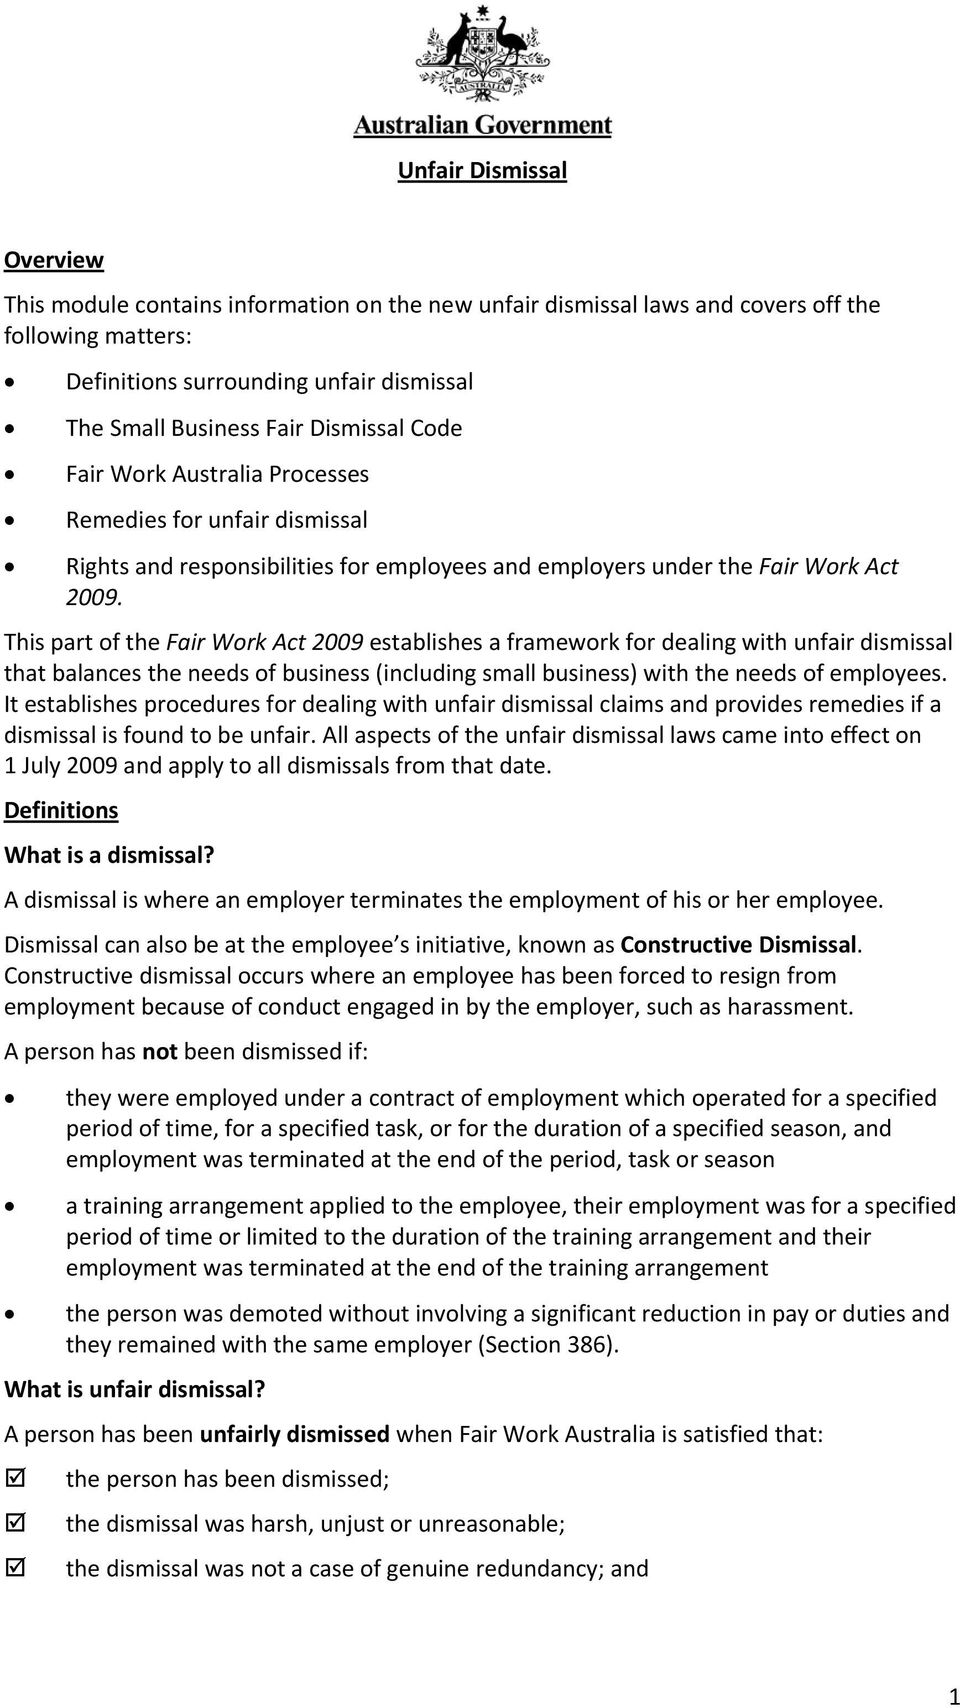 This part of the Fair Work Act 2009 establishes a framework for dealing with unfair dismissal that balances the needs of business (including small business) with the needs of employees.